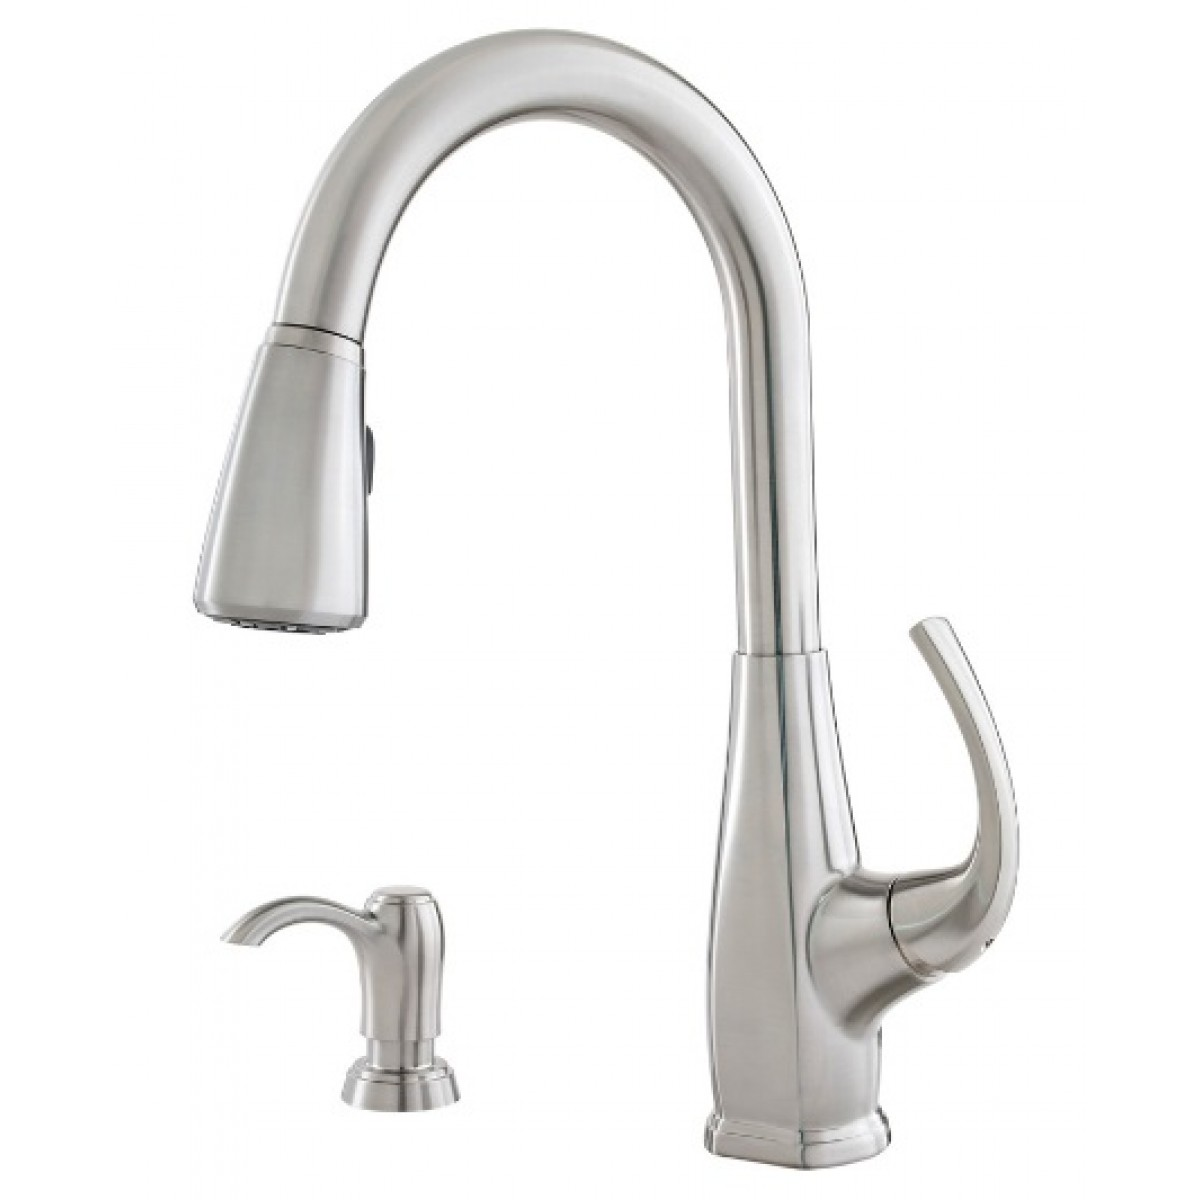 Pfister selia lead free single handle pull out kitchen for Faucet soap dispenser placement